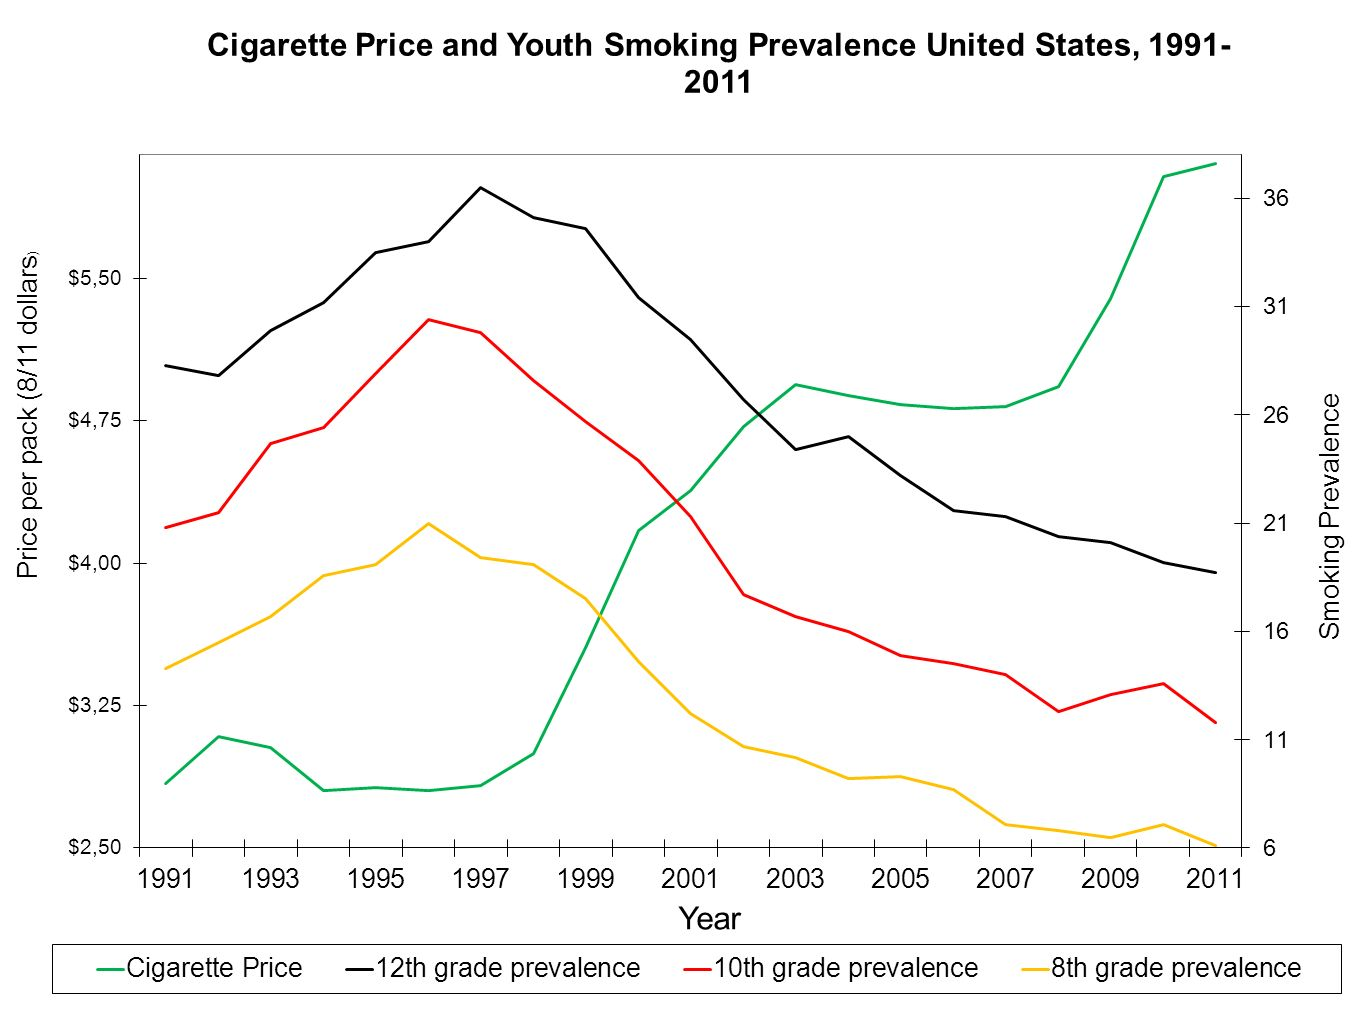 Source: MTF, Tax Burden on Tobacco, 2011, and author's calculations